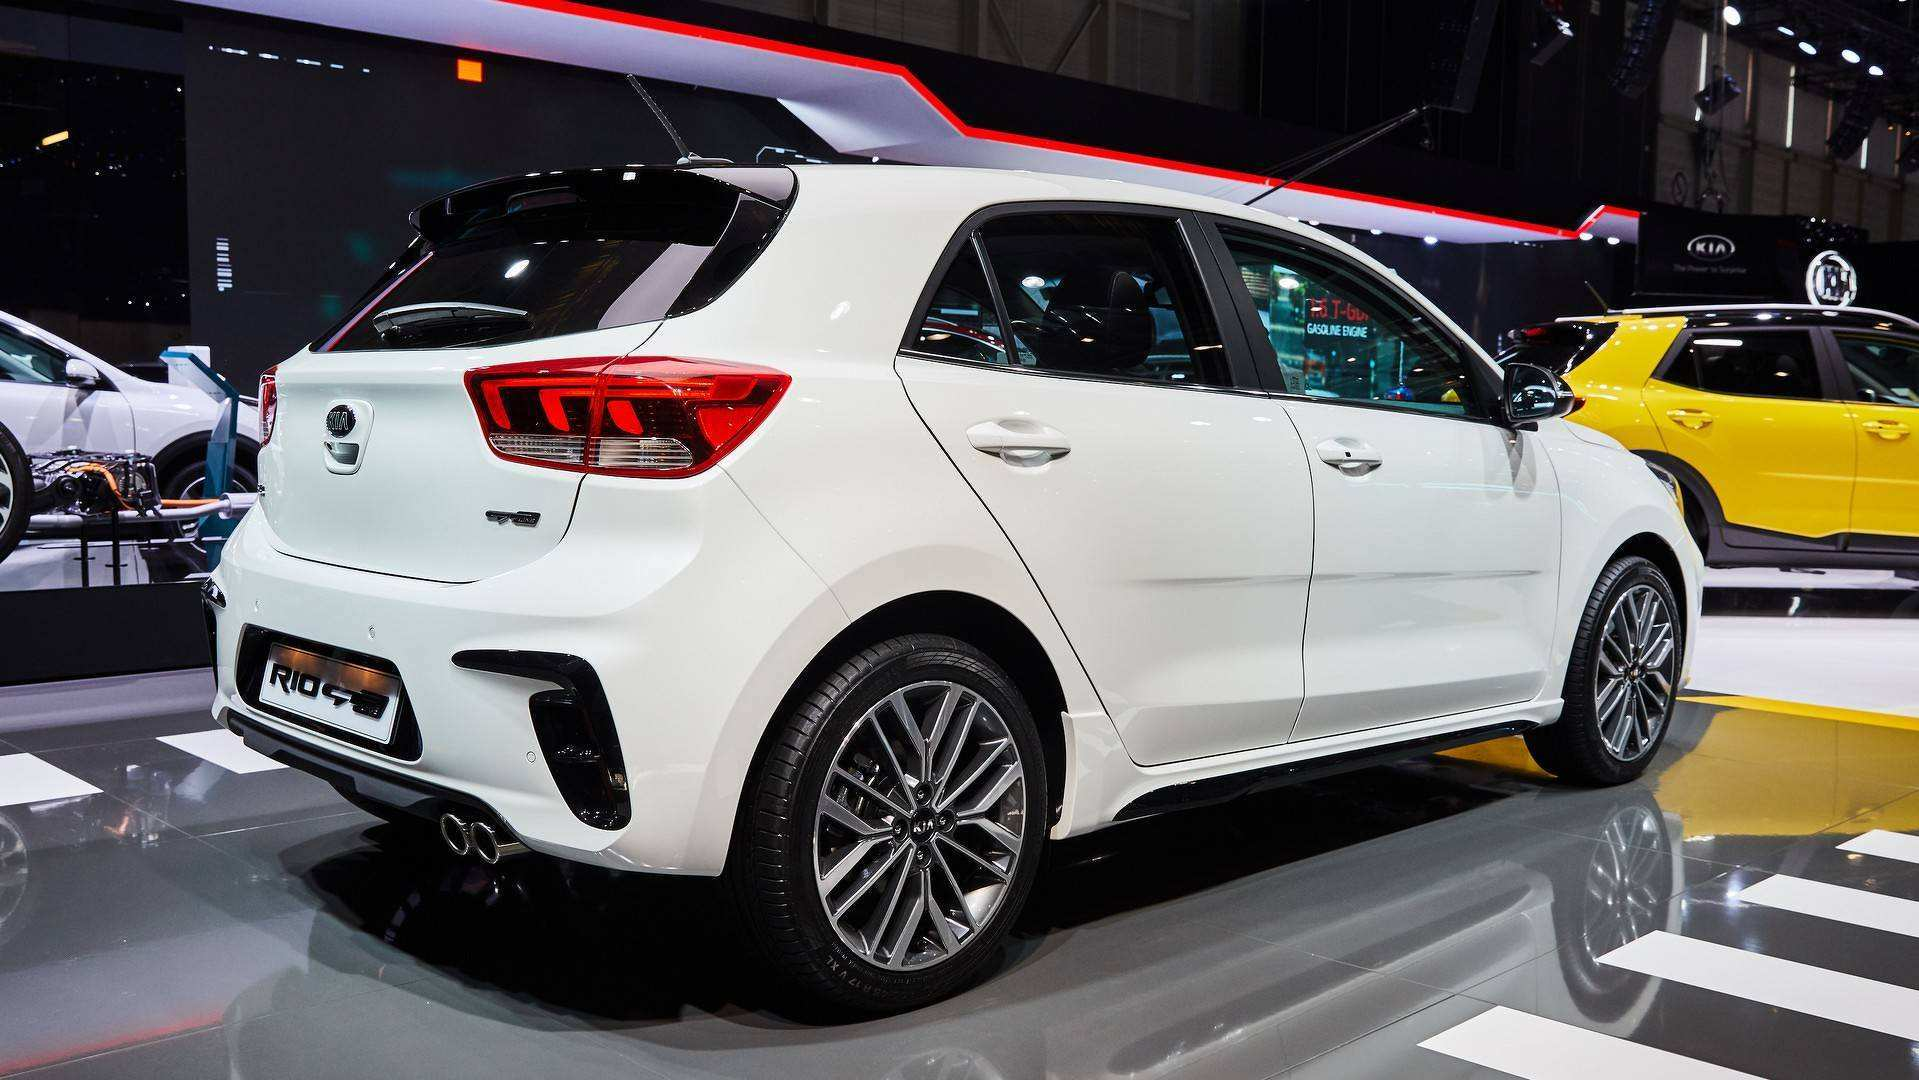 83 All New Kia Rio Gt 2020 Pricing for Kia Rio Gt 2020